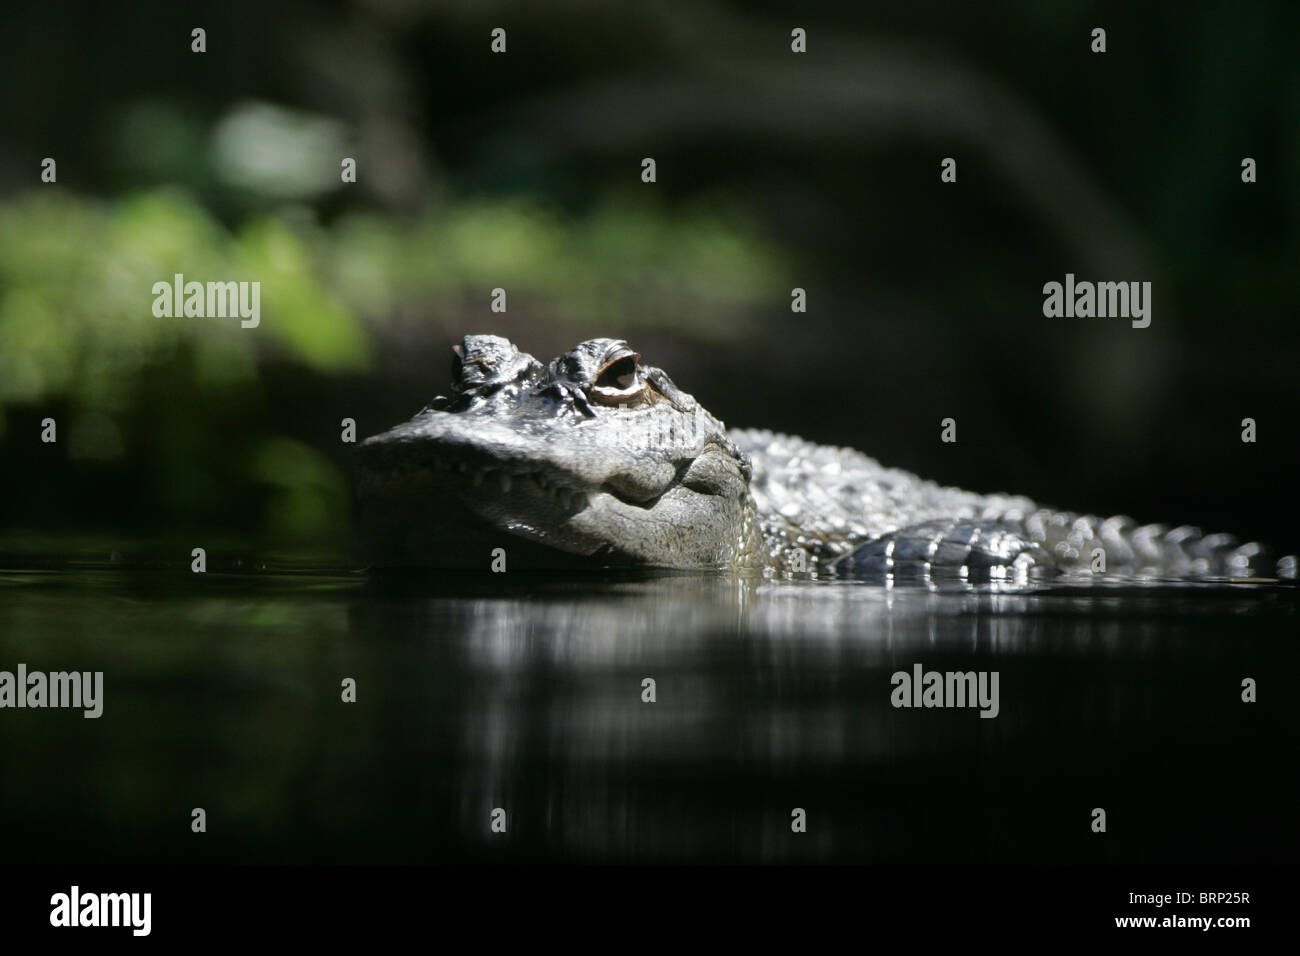 Cuvier's Dwarf Caiman with its head and part of its body above water - Stock Image